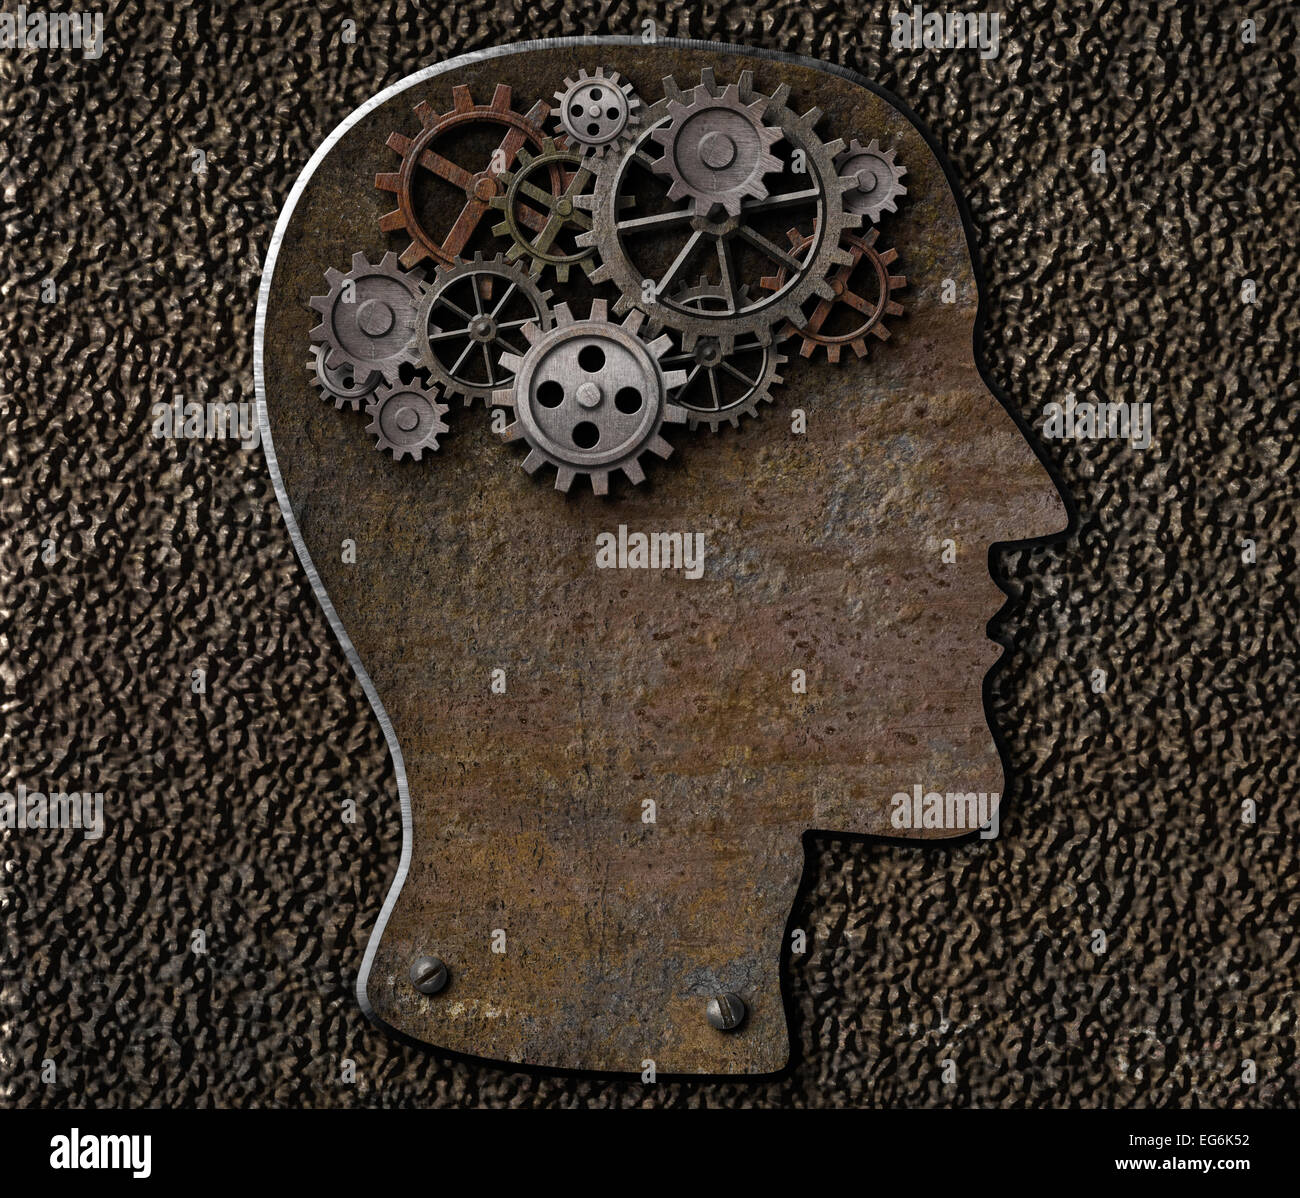 Metal brain gears and cogs. Mental illness, psychology, invention and idea concept. - Stock Image